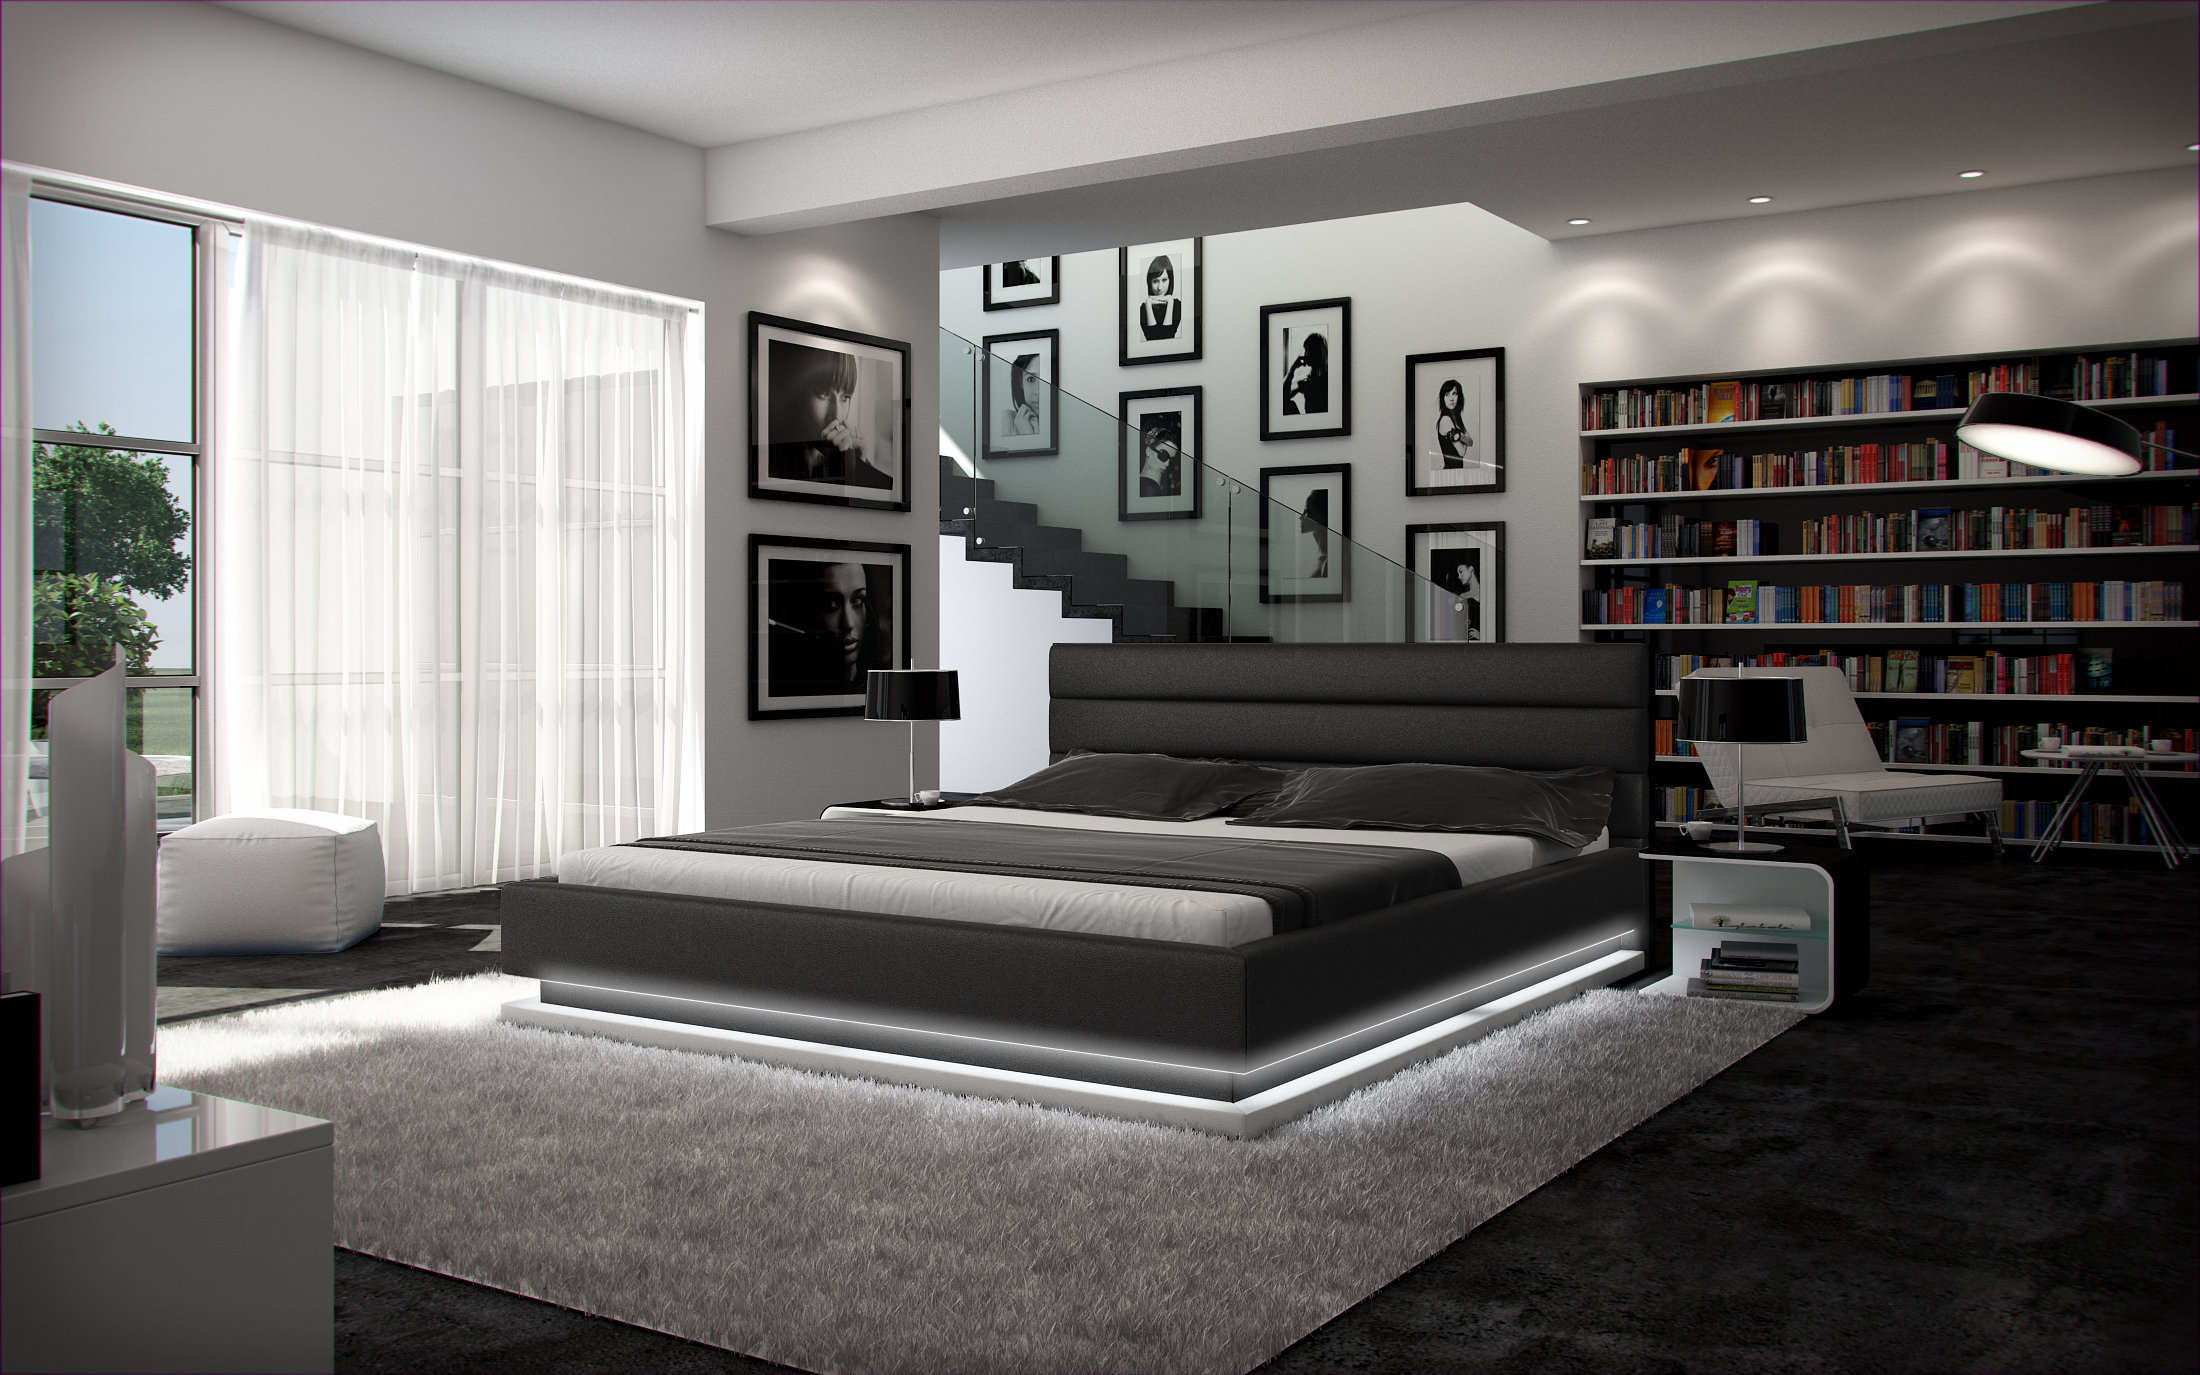 polsterbett 180 x 200 cm gio leder farbauswahl pani. Black Bedroom Furniture Sets. Home Design Ideas